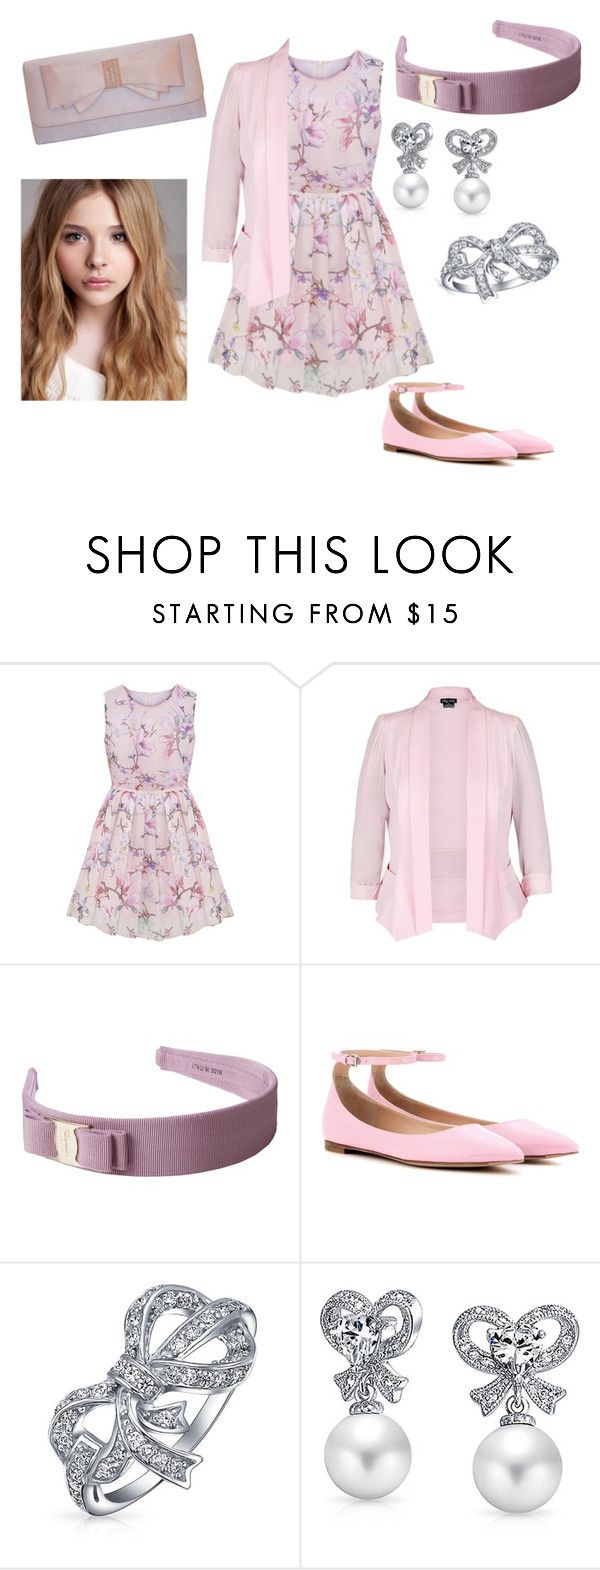 """Elizabeth Outfit 2"" by paisley099 ❤ liked on Polyvore featuring City Chic, Salvatore Ferragamo, Chloé, Gianvito Rossi, Bling Jewelry, Sasha and disneydescendants"